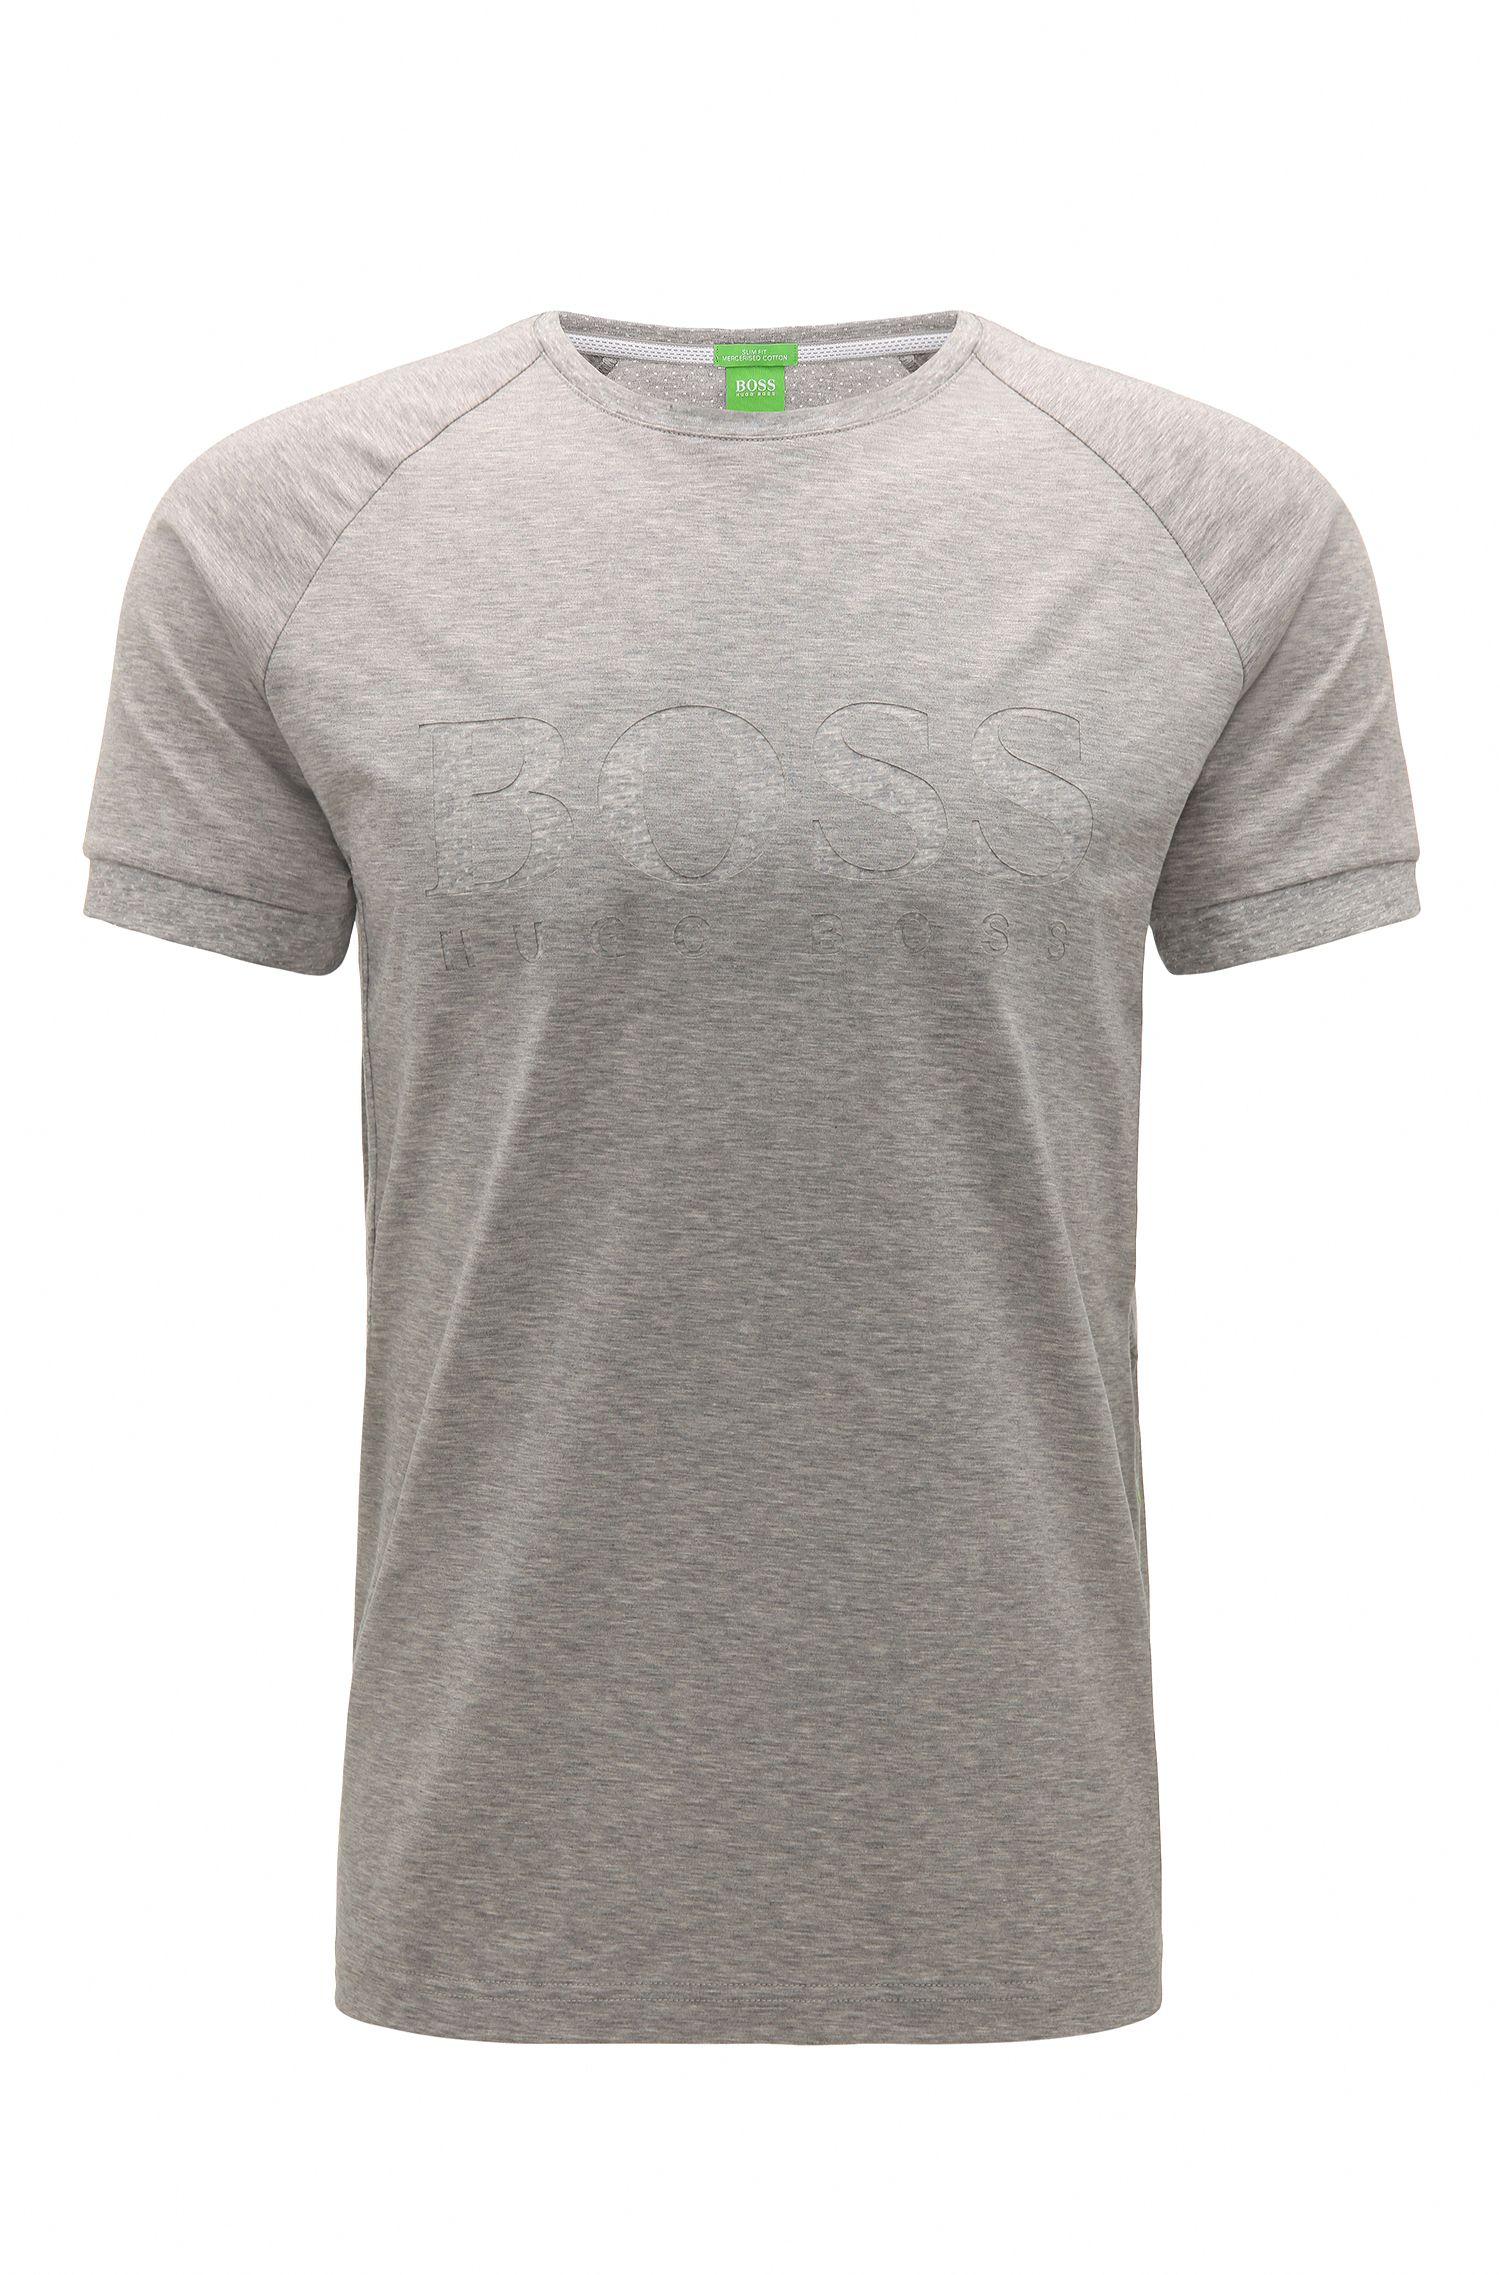 Mottled slim-fit t-shirt in stretch cotton with logo: 'Taleo'